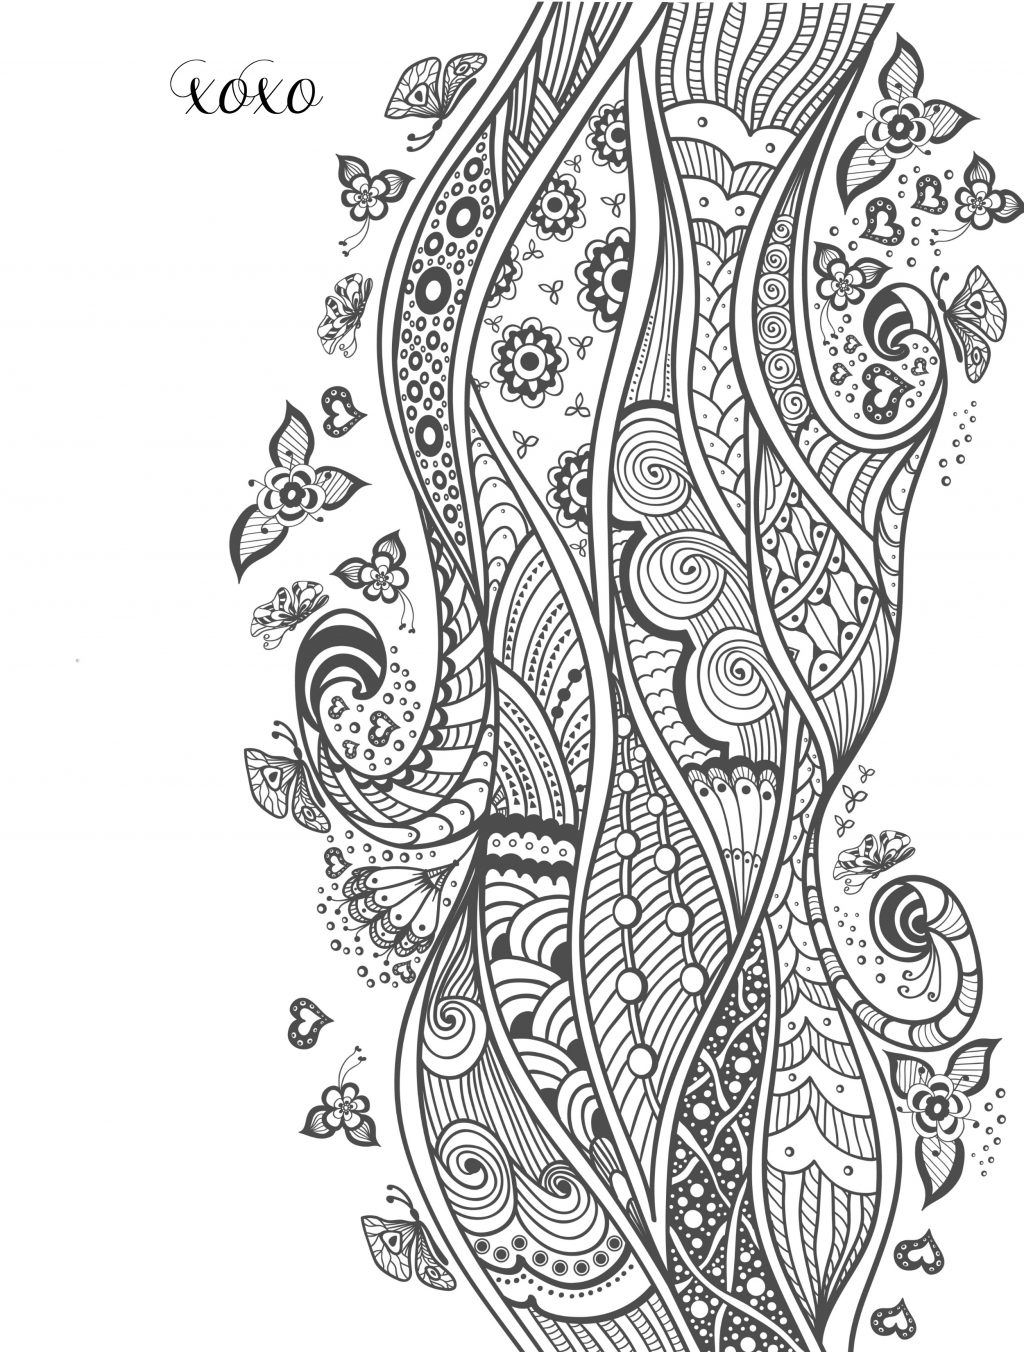 Valentines Day Coloring Pages For Adults Free Printable Valentine Coloring Pages For Adults Valentines Day 20